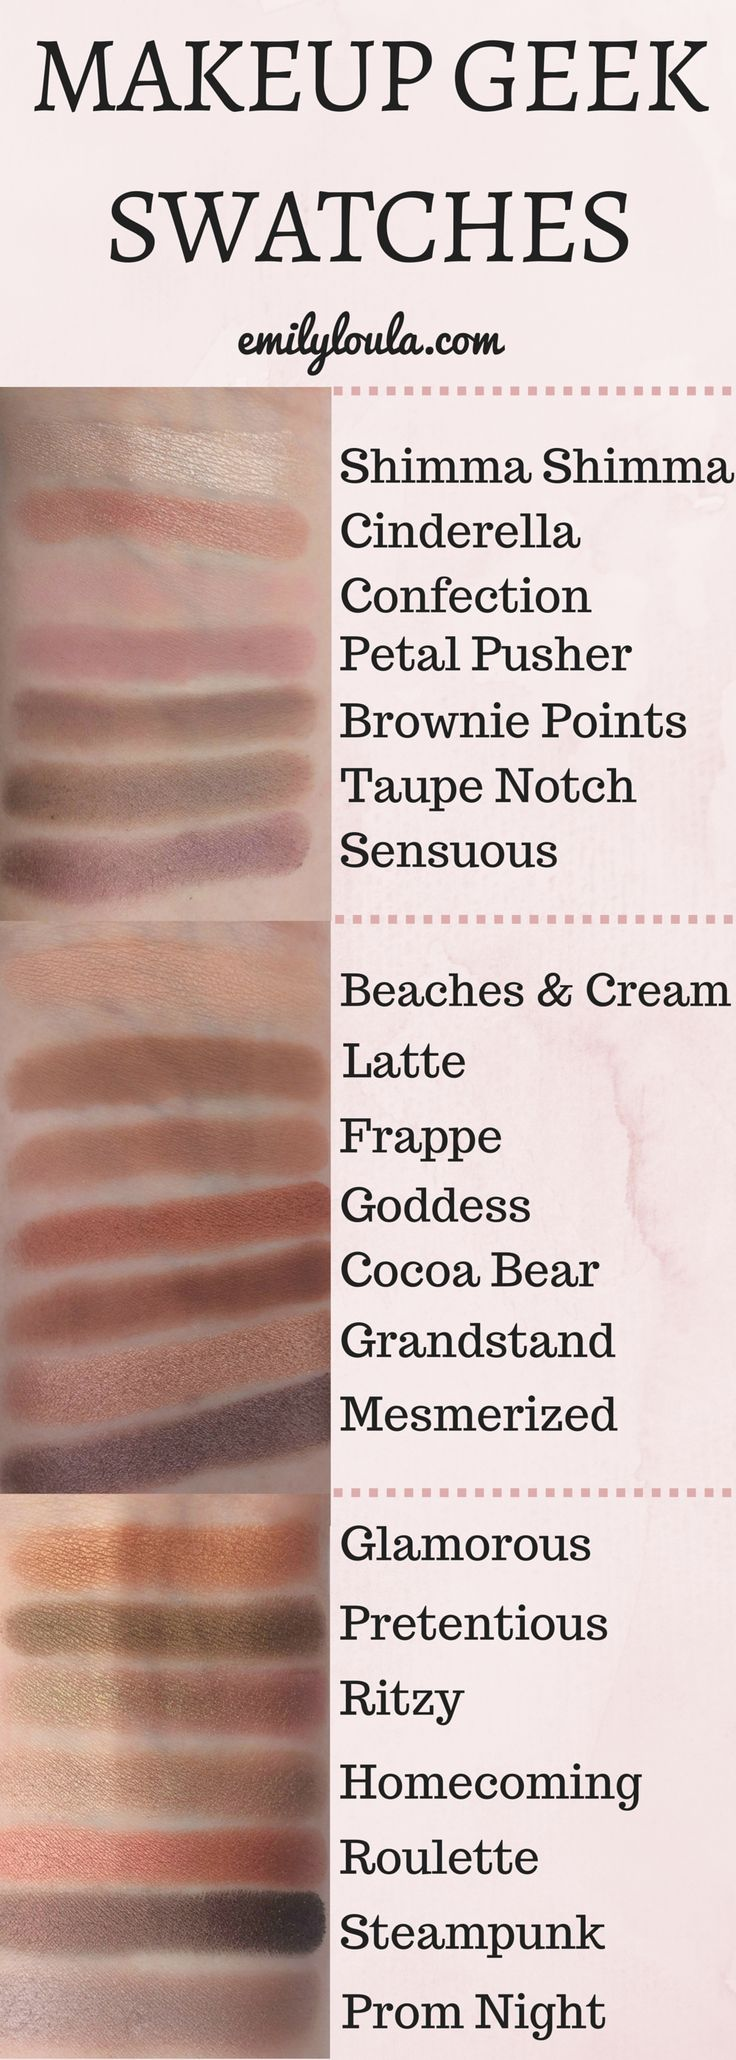 Makeup Geek Eyeshadow Pan Swatches of; shimma shimma, cinderella, confection, petal pusher, brownie points, taupe notch, sensuous, beaches & cream, latte, frappe, goddess, cocoa bear, grandstand, mesmerized (mesmerised), glamorous, pretentious, ritzy, homecoming, roulette, streampunk and prom night. Featuring Makeup Geek's normal eye shadow pans, the duochrome pans and their foiled pans. From emilyloula.com - beauty blog.